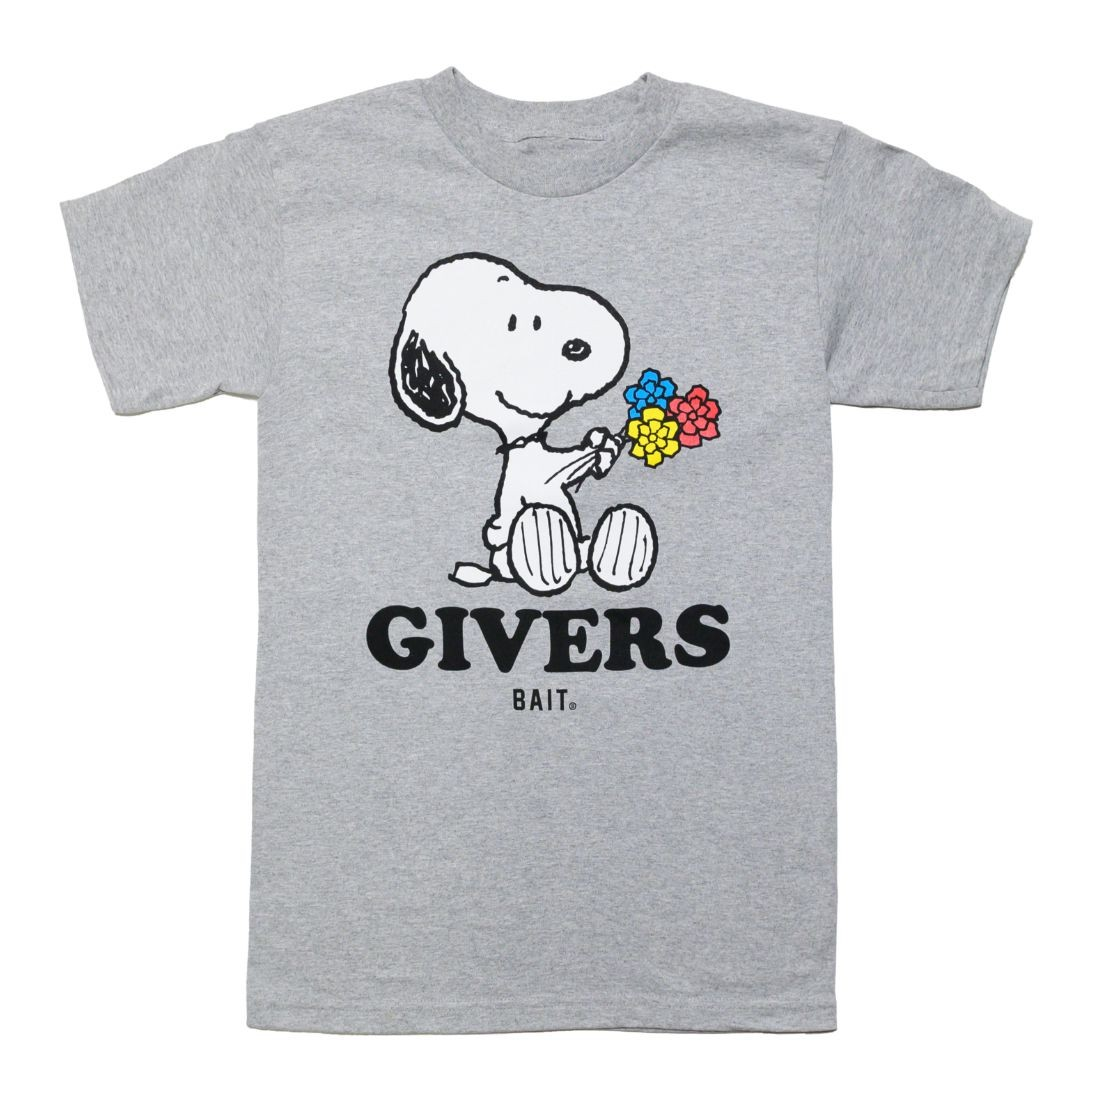 BAIT x Snoopy Men Givers Tee (gray)